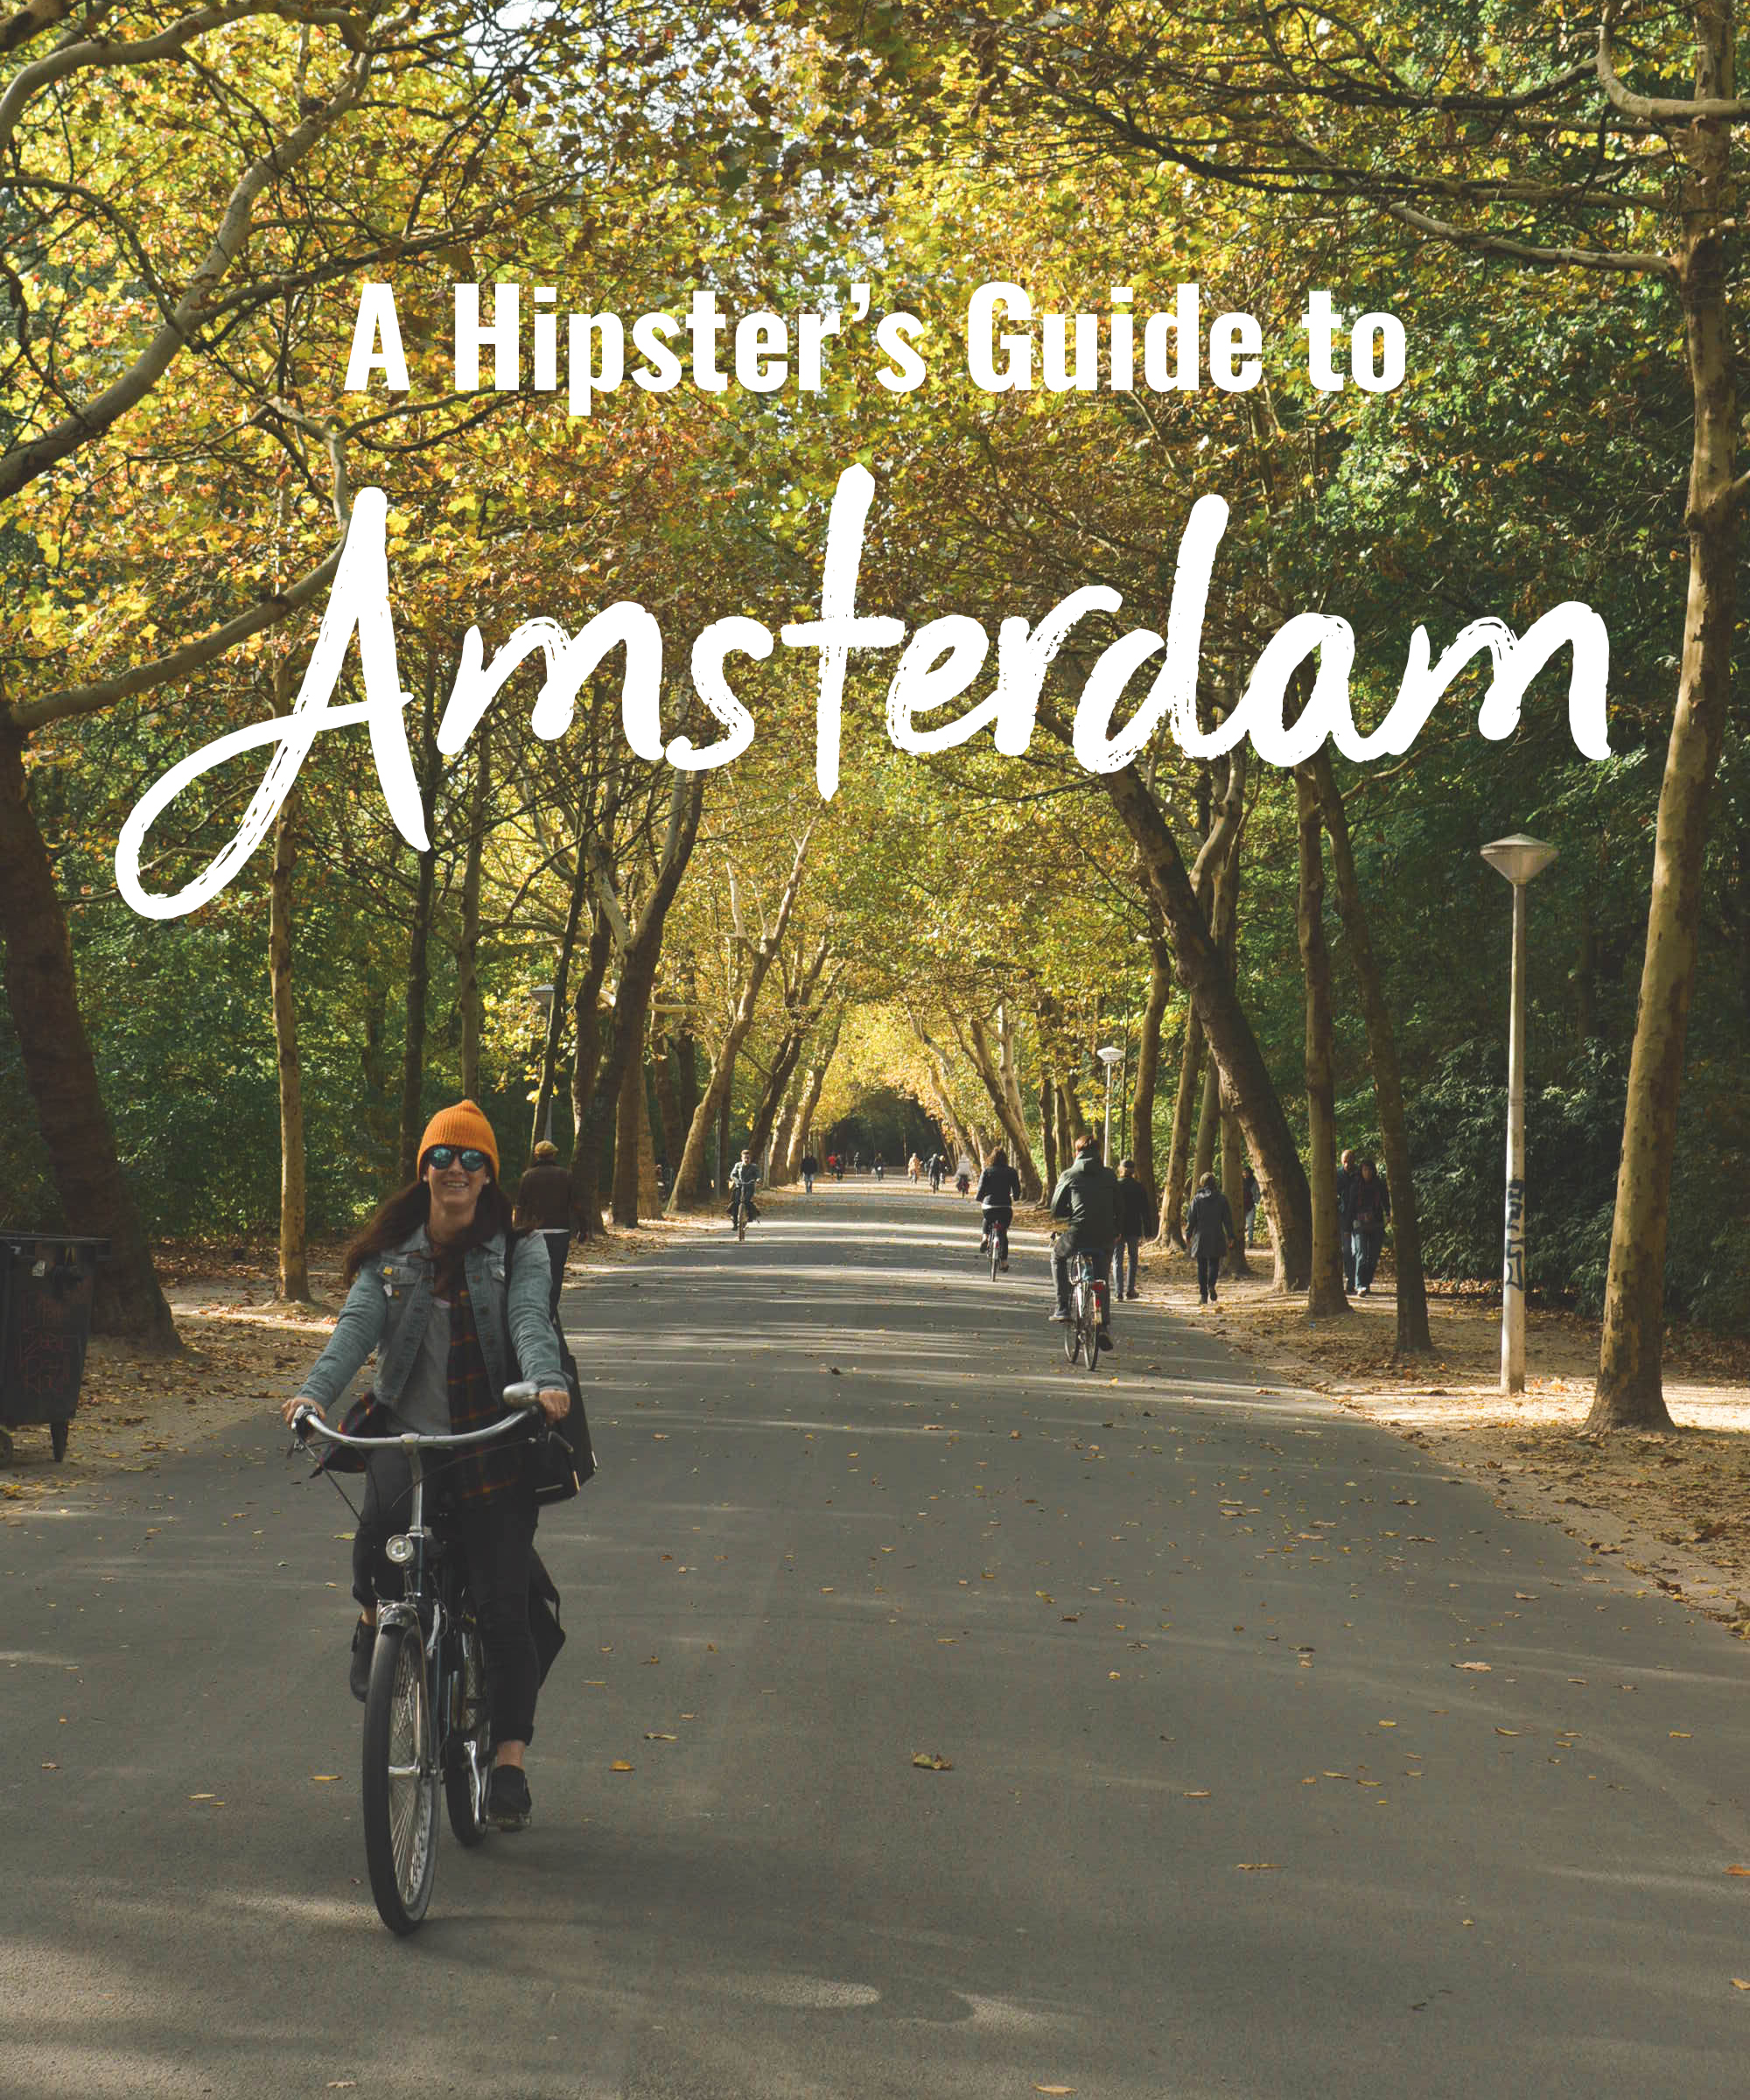 A Hipster's Guide to Amsterdam